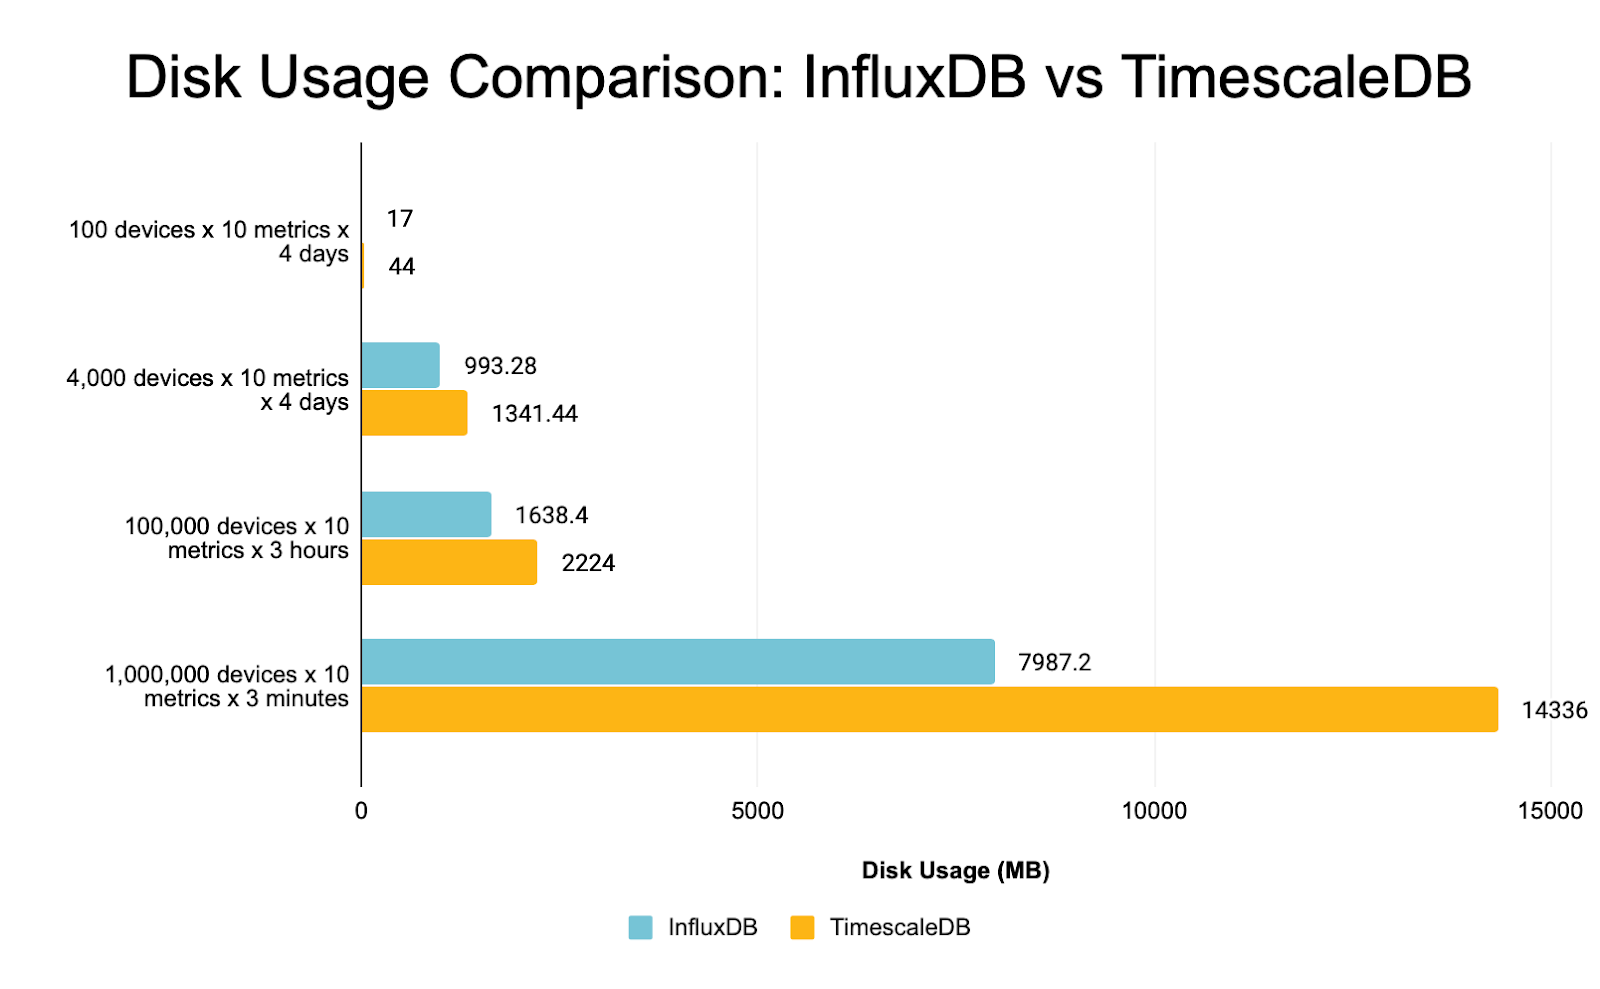 Chart comparing disk usage between InfluxDB and TimescaleDB